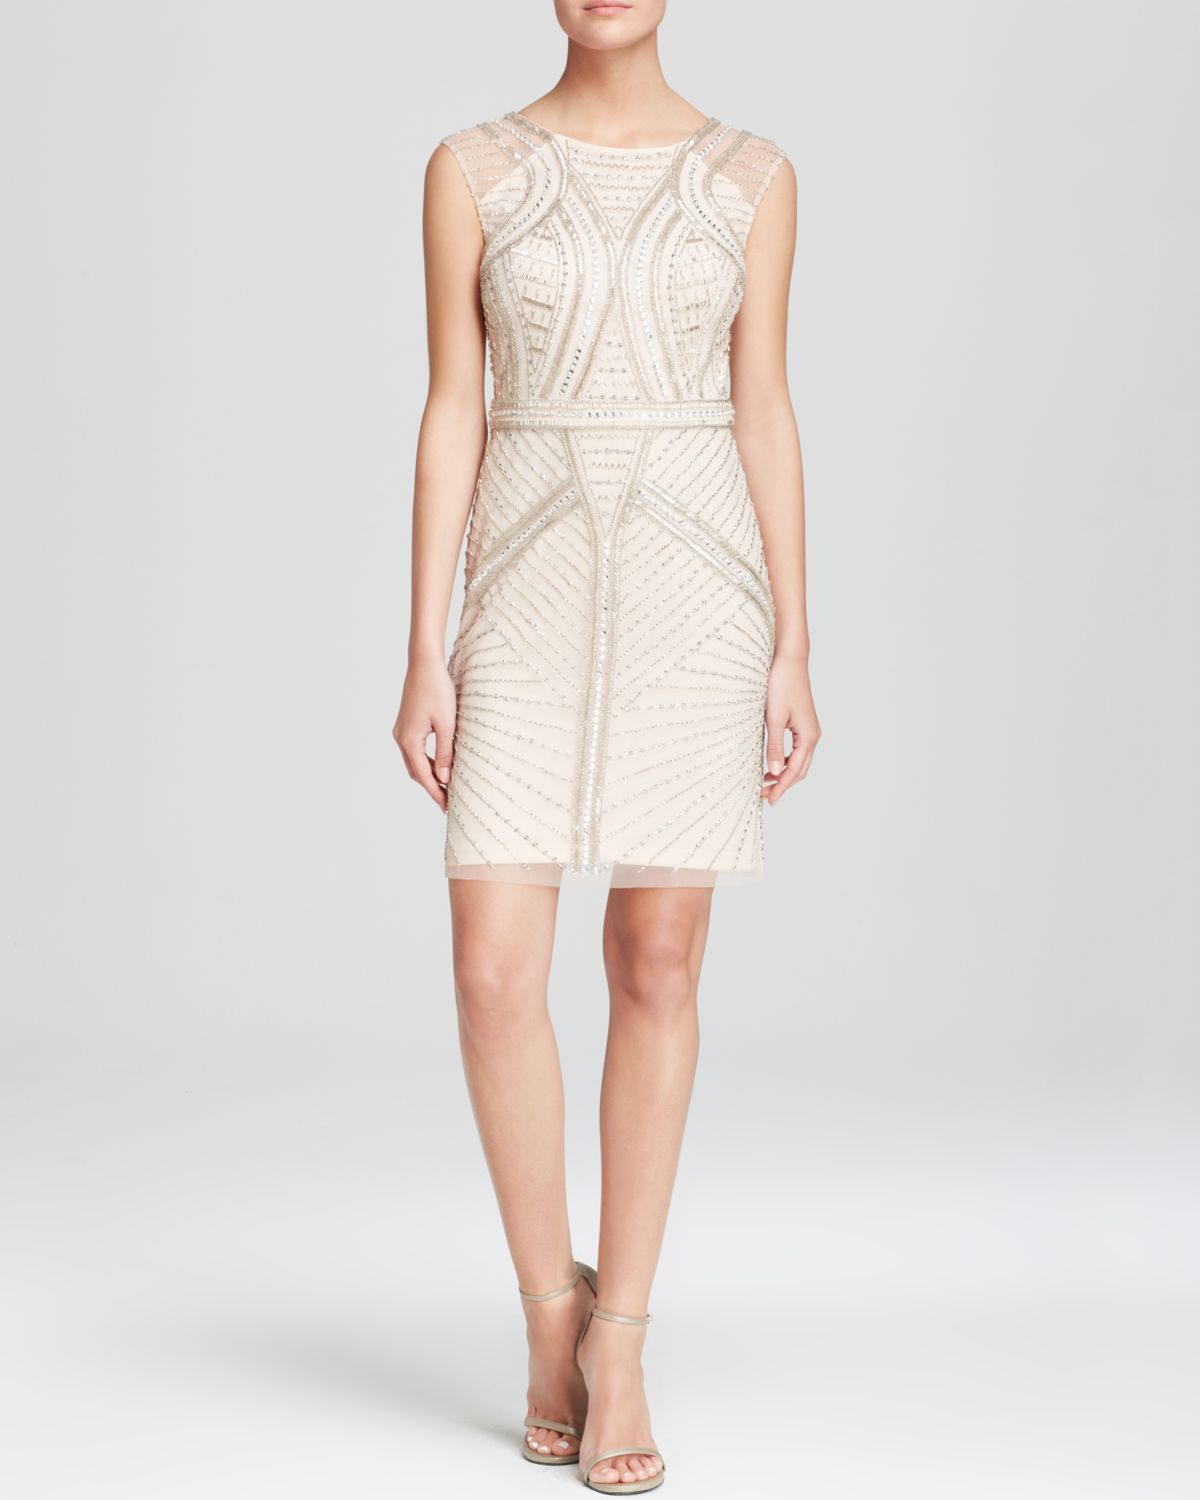 Aidan Mattox Sleeveless Beaded Dress – Dresses for Woman